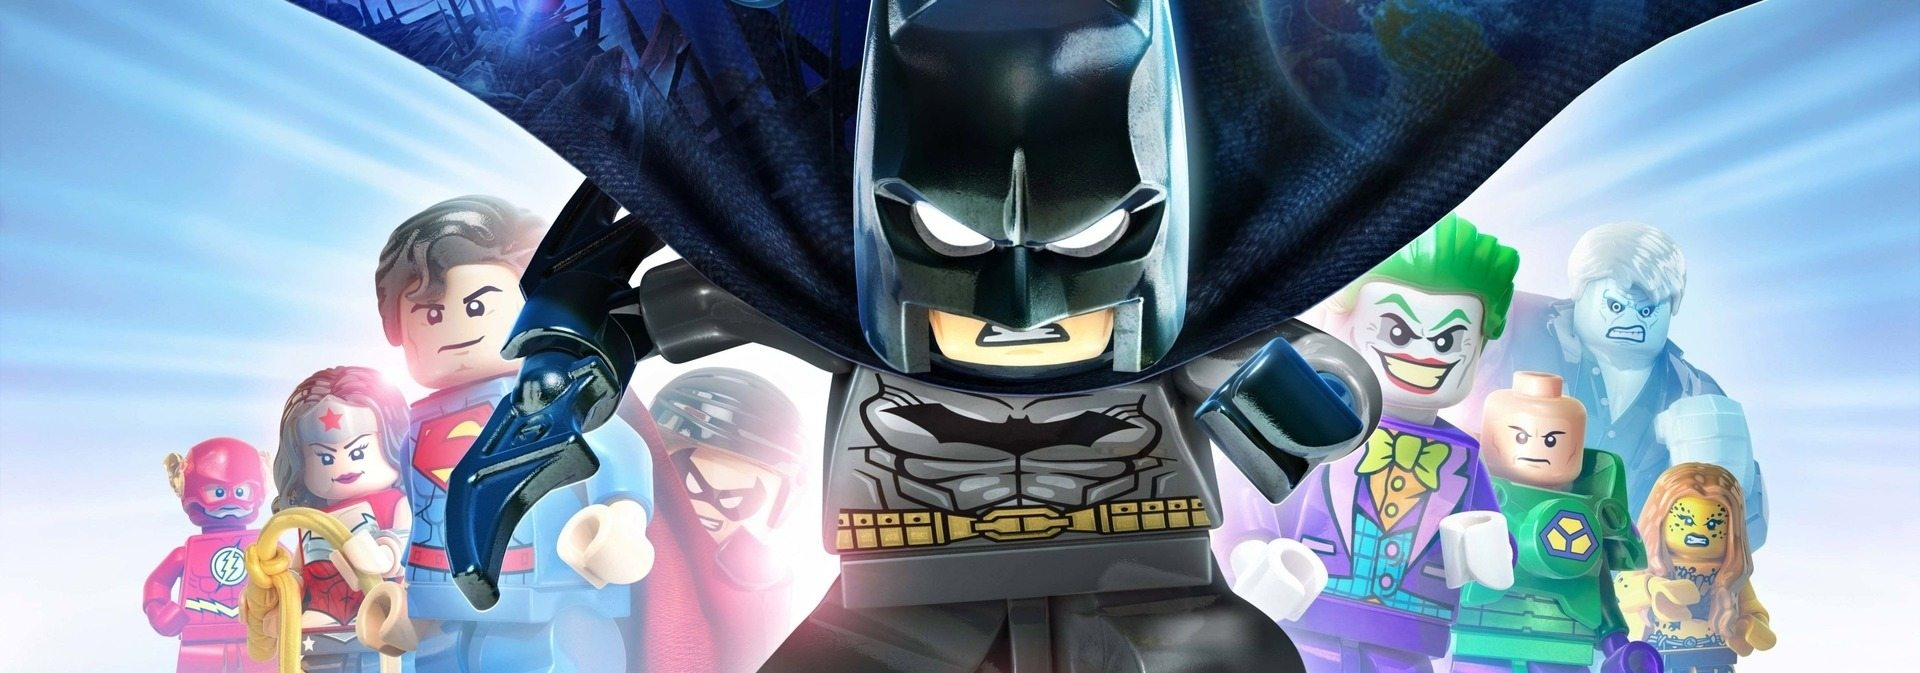 Image results for batman lego trilogy video game